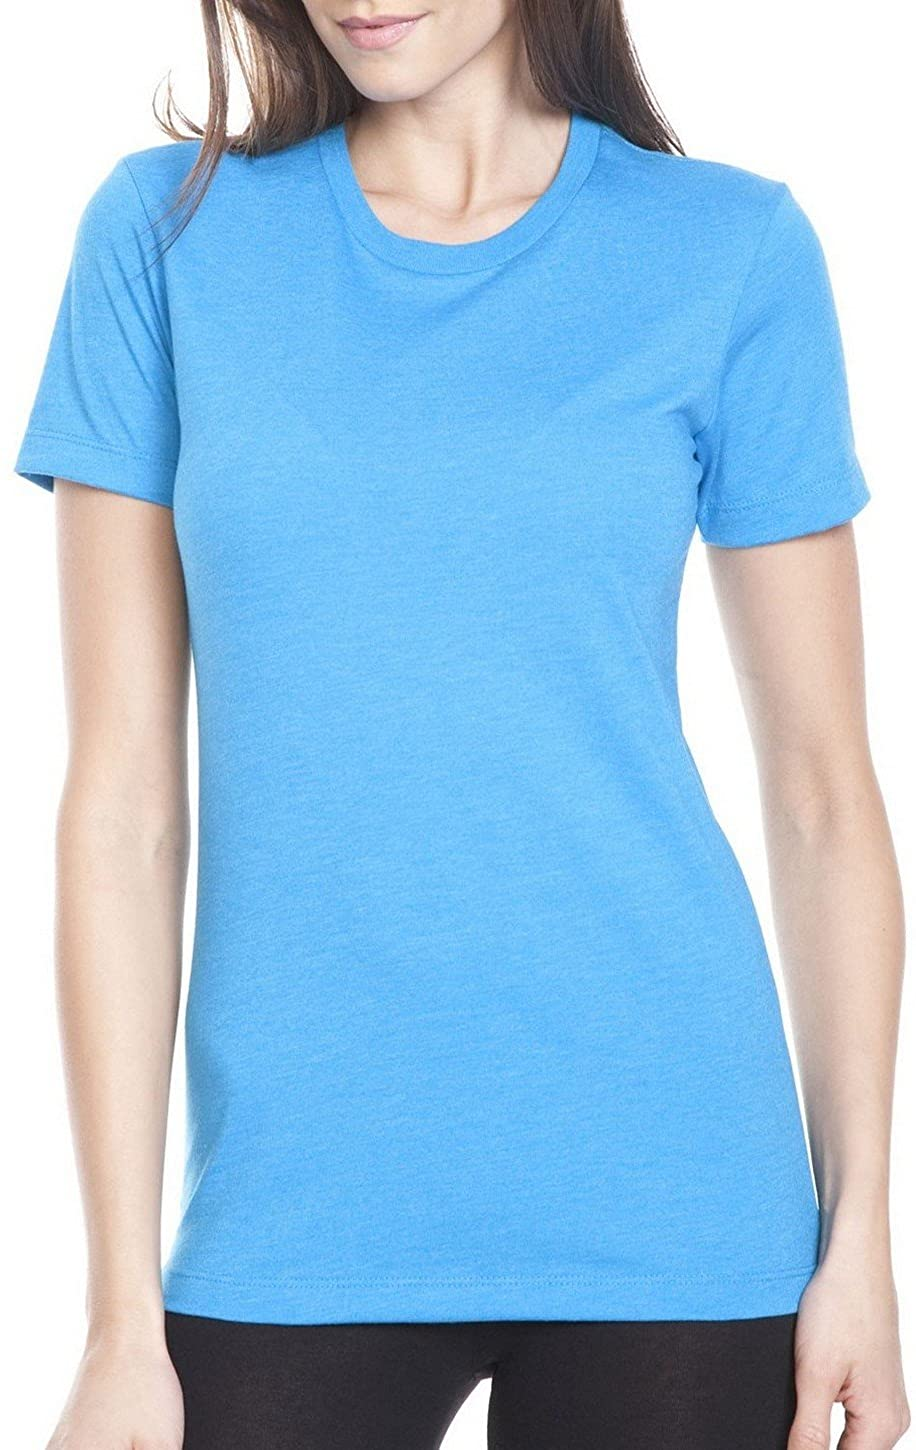 Next Level 6610 Ladies Crew Tee Turquoise X-Large